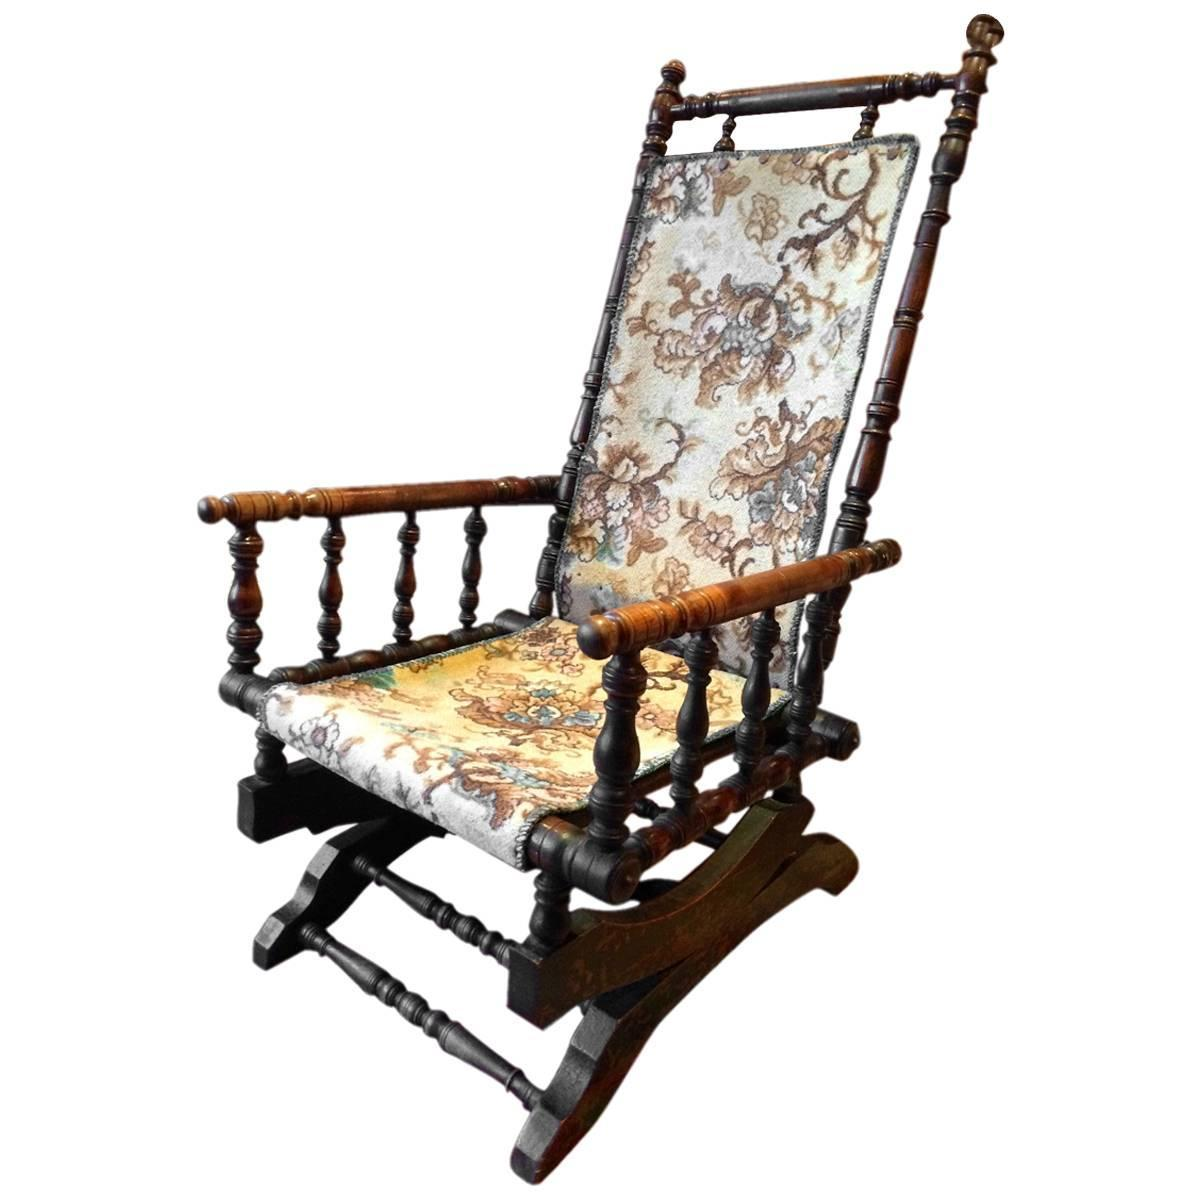 Antique Rocking Chair Antique Armchair American Rocking Chair Mahogany 19th